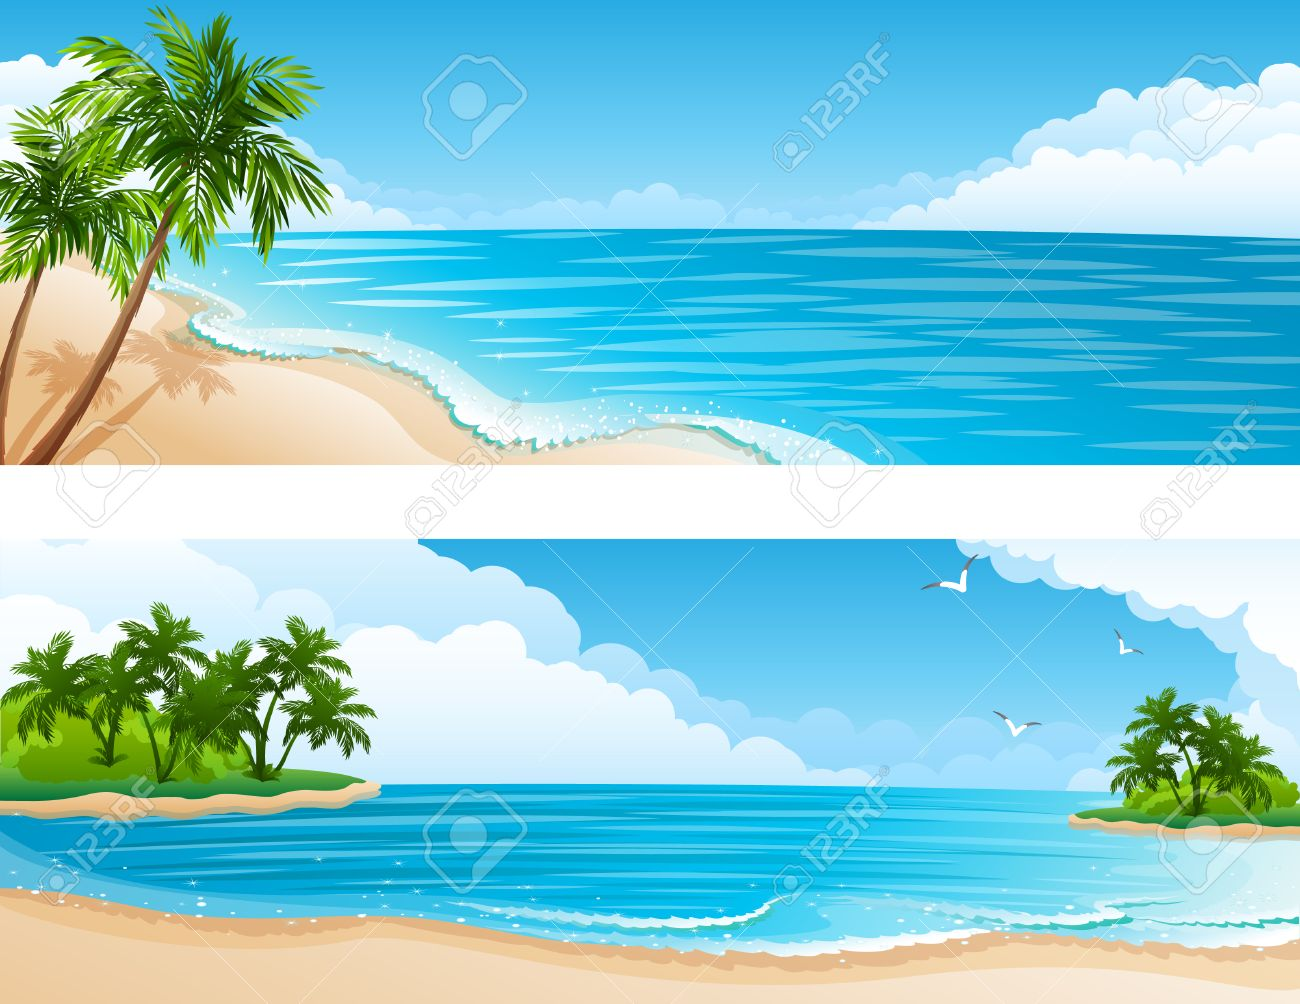 illustration - Tropical landscape with beach, sea and palm trees Stock Vector - 6953392